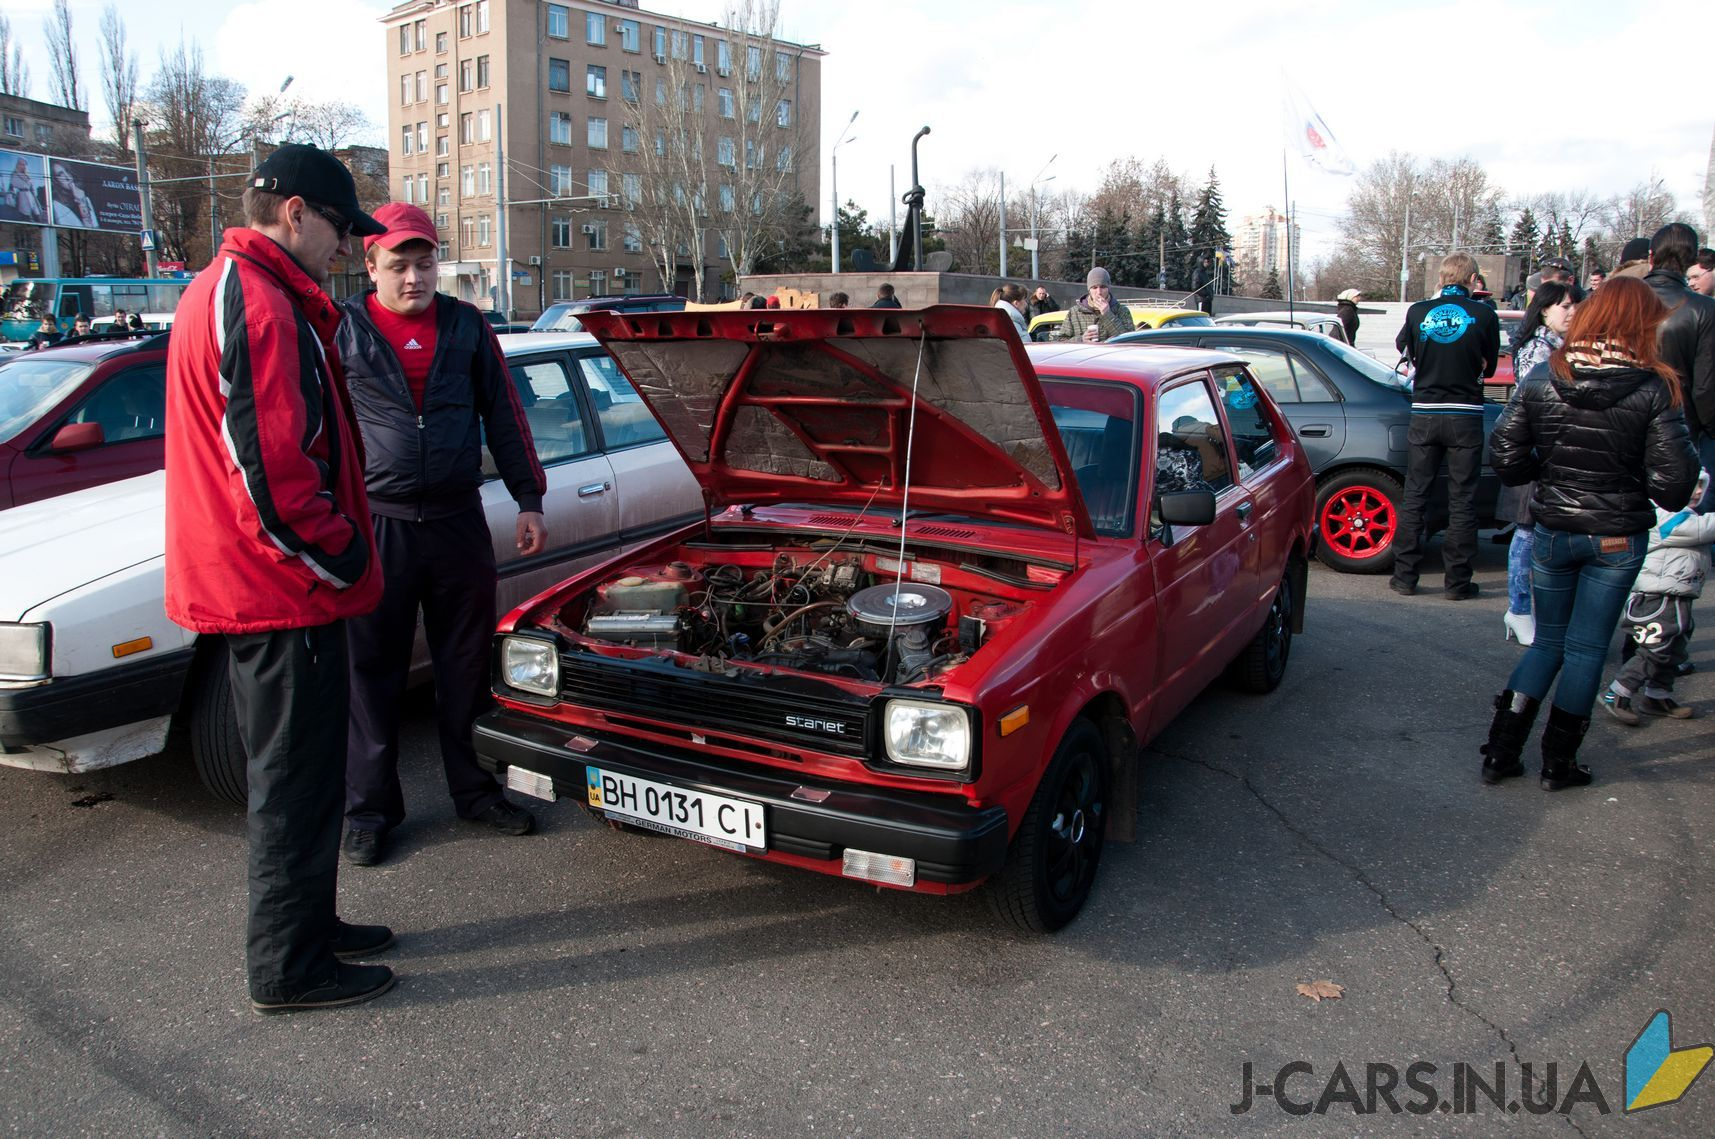 j-cars.in.ua toyota starlet